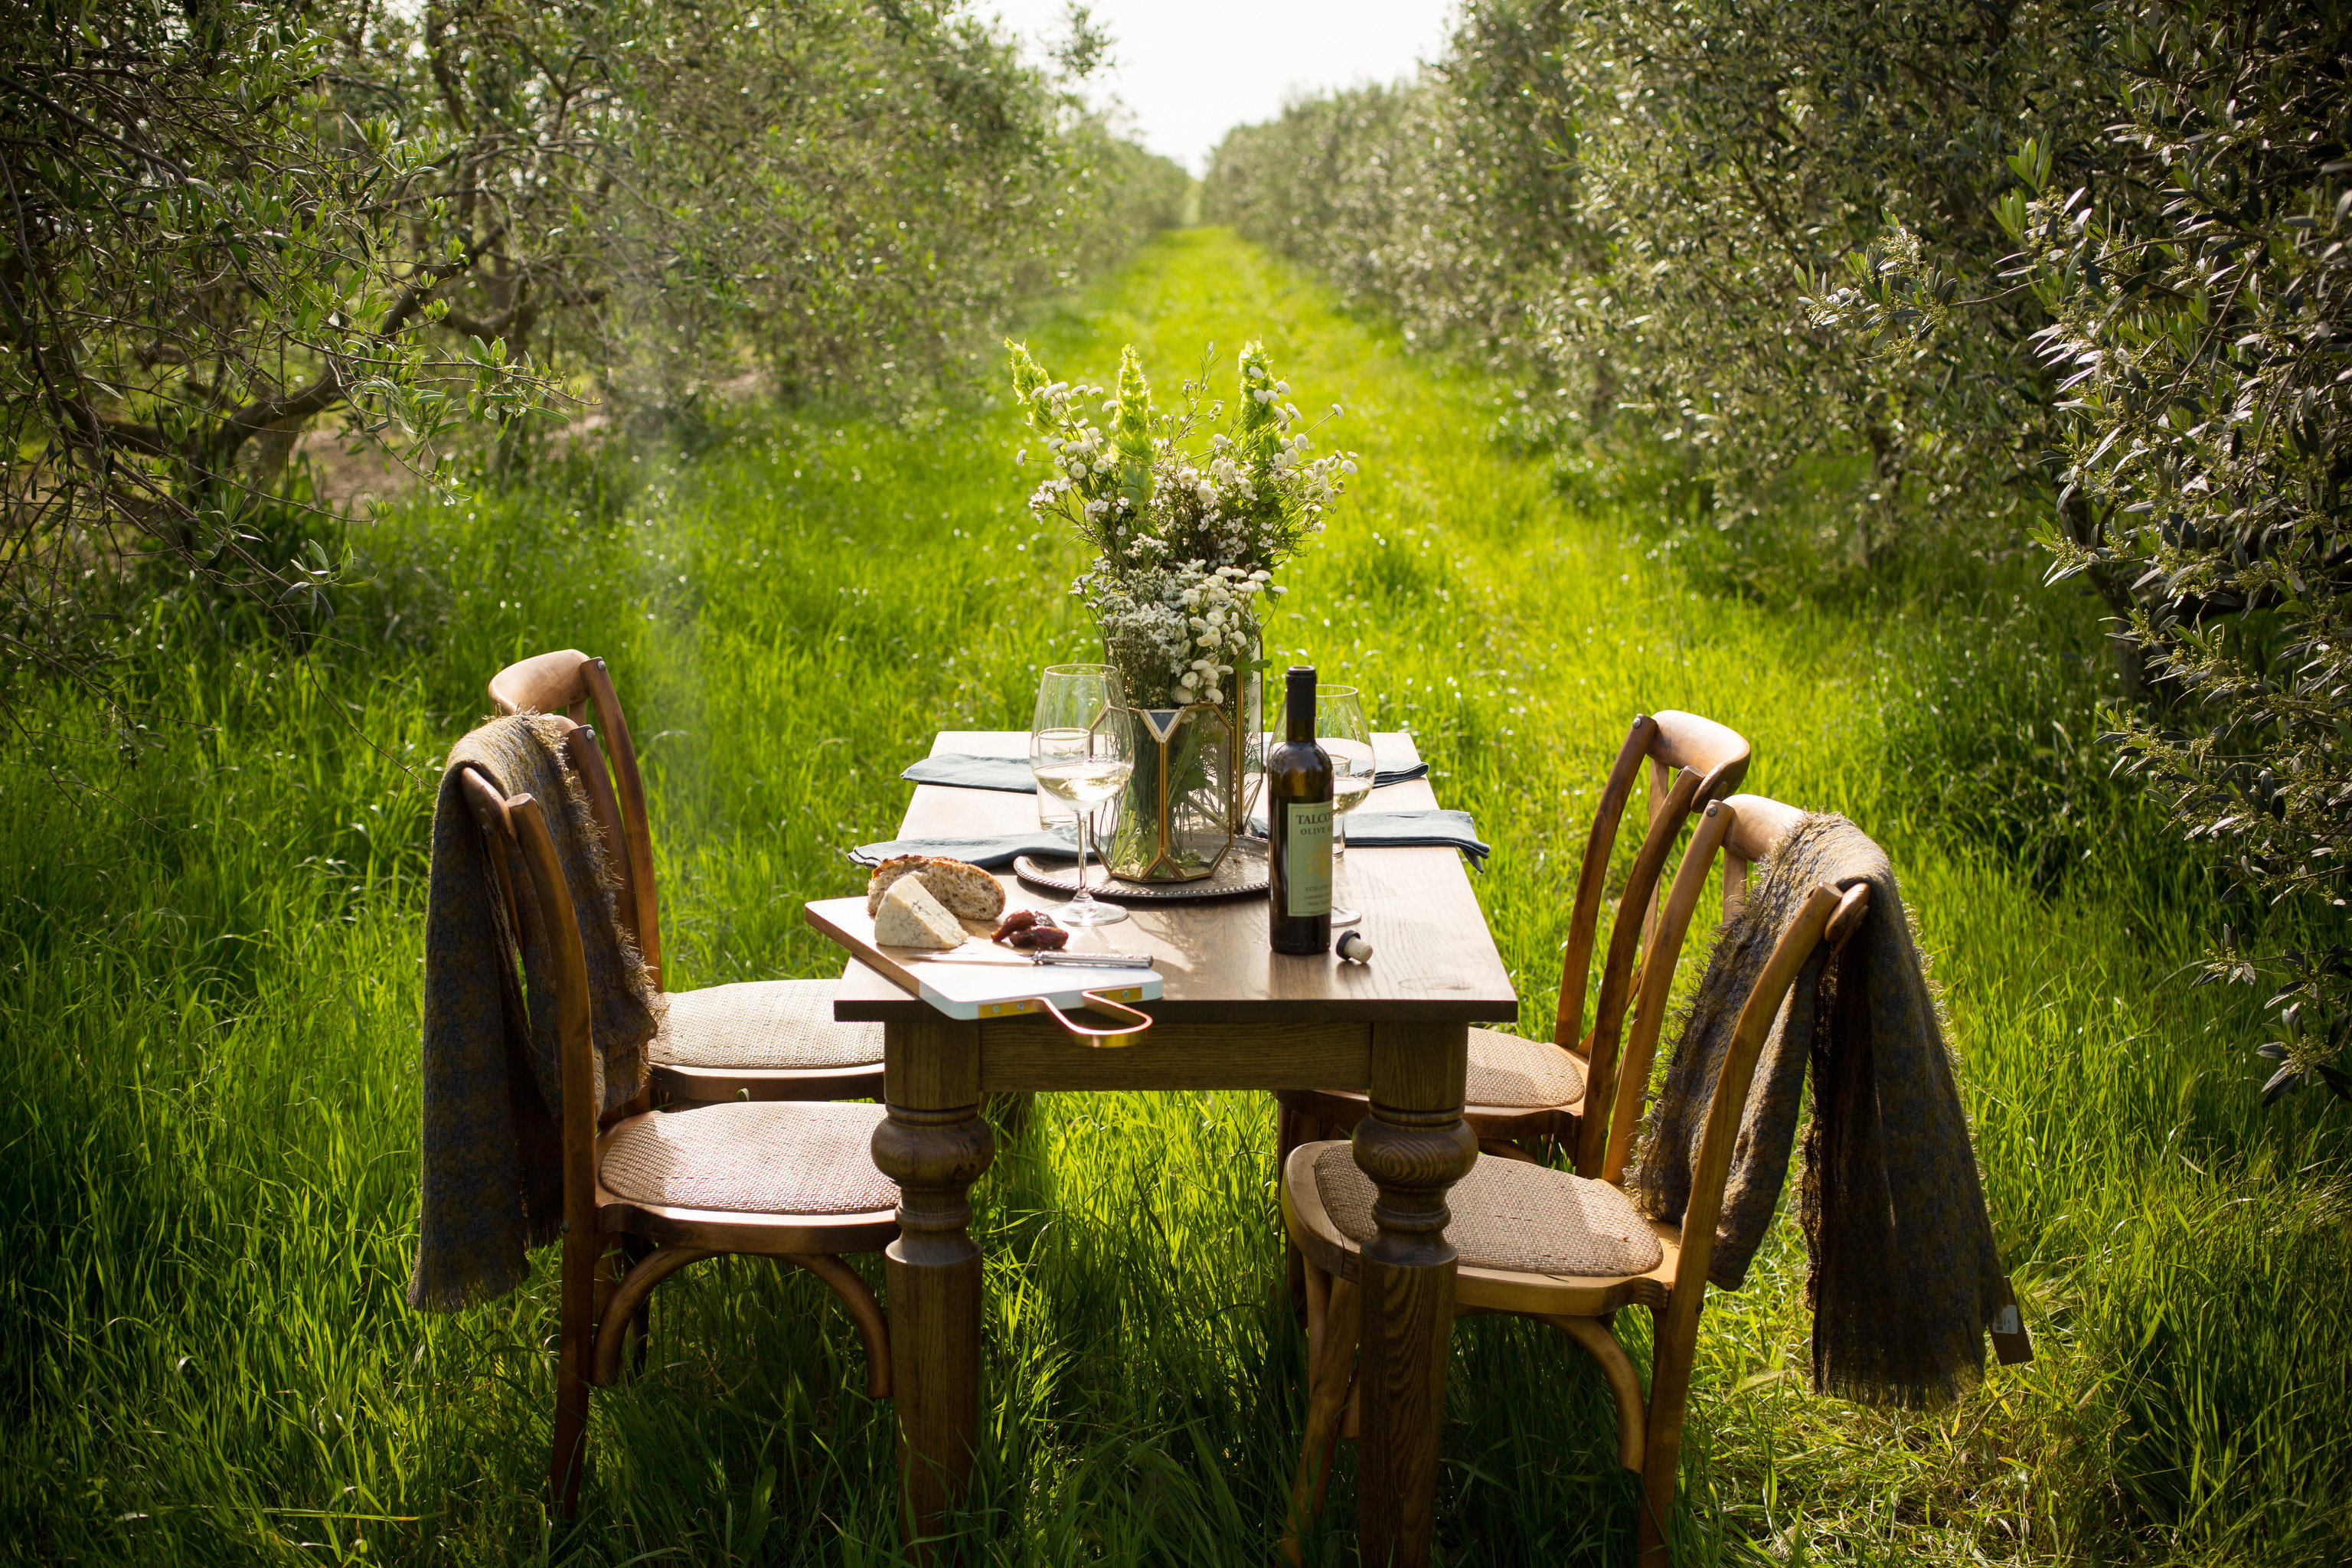 Hotels Trip Ideas tree outdoor green park botany Garden woodland flower backyard Forest plant estate cottage autumn yard furniture surrounded wooded